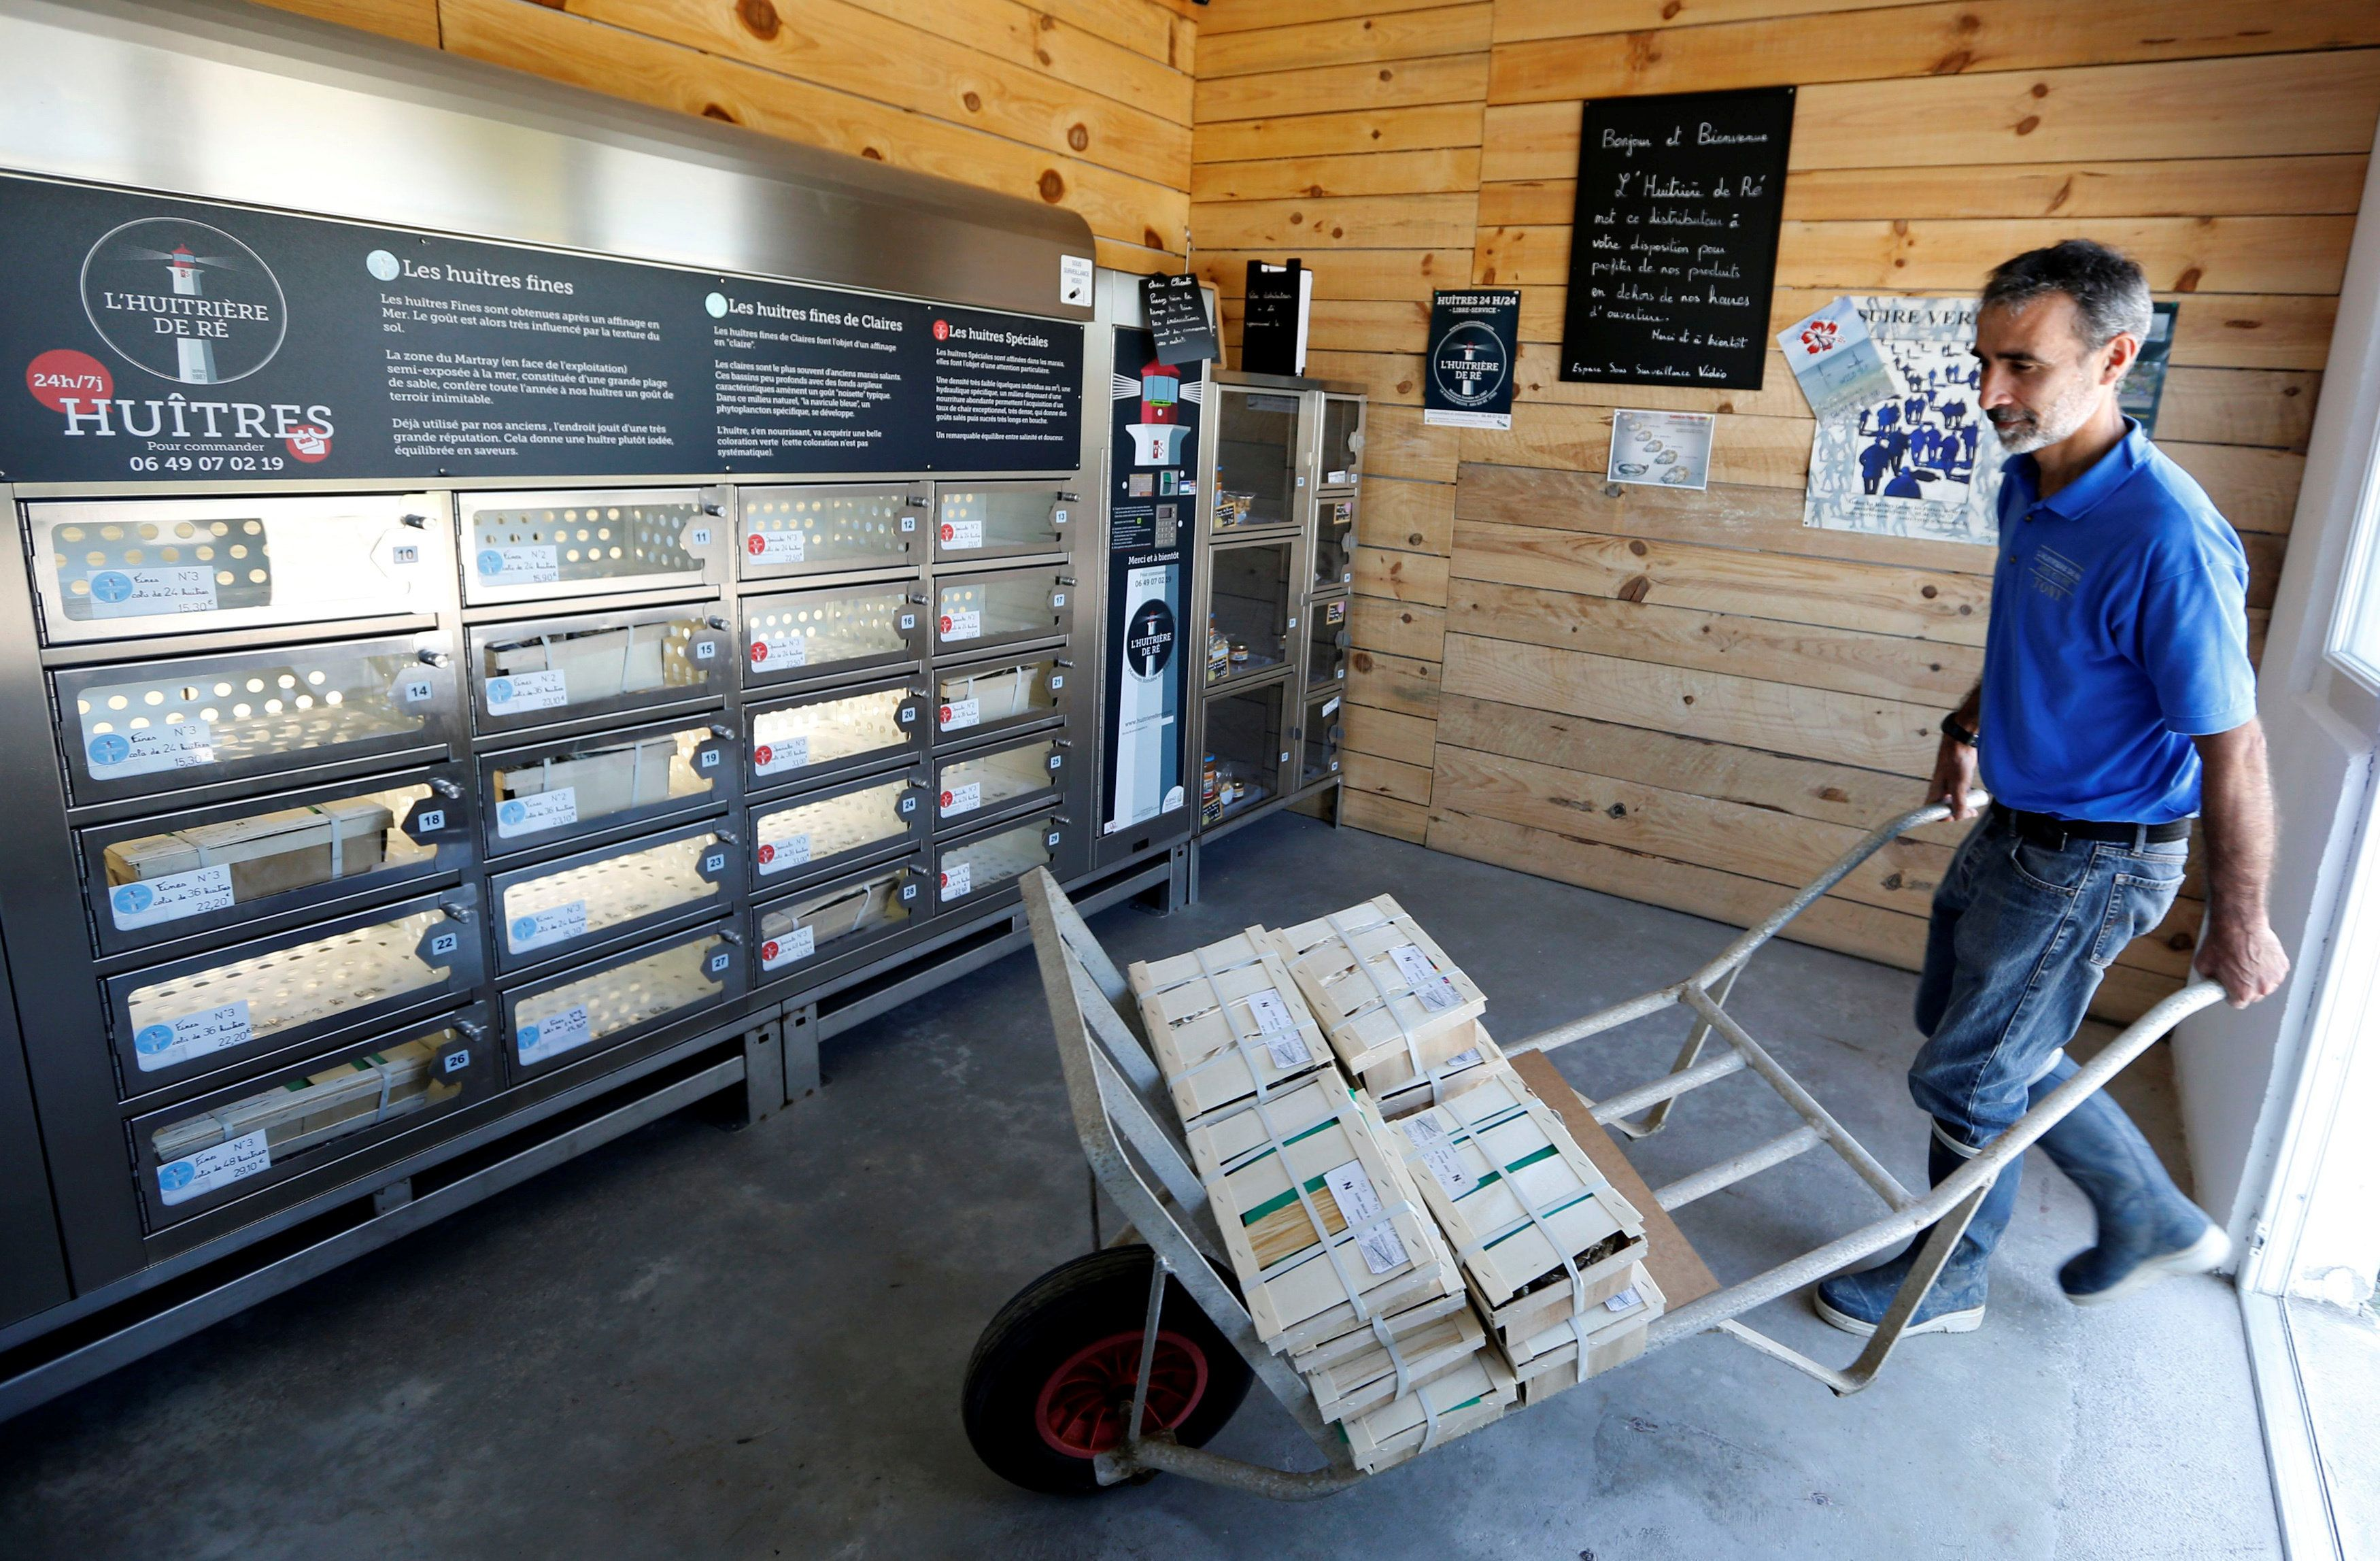 Tony Berthelot arrives with oysters at l'huitriere de Re, where the automatic oyster vending machine is set, in France on Aug